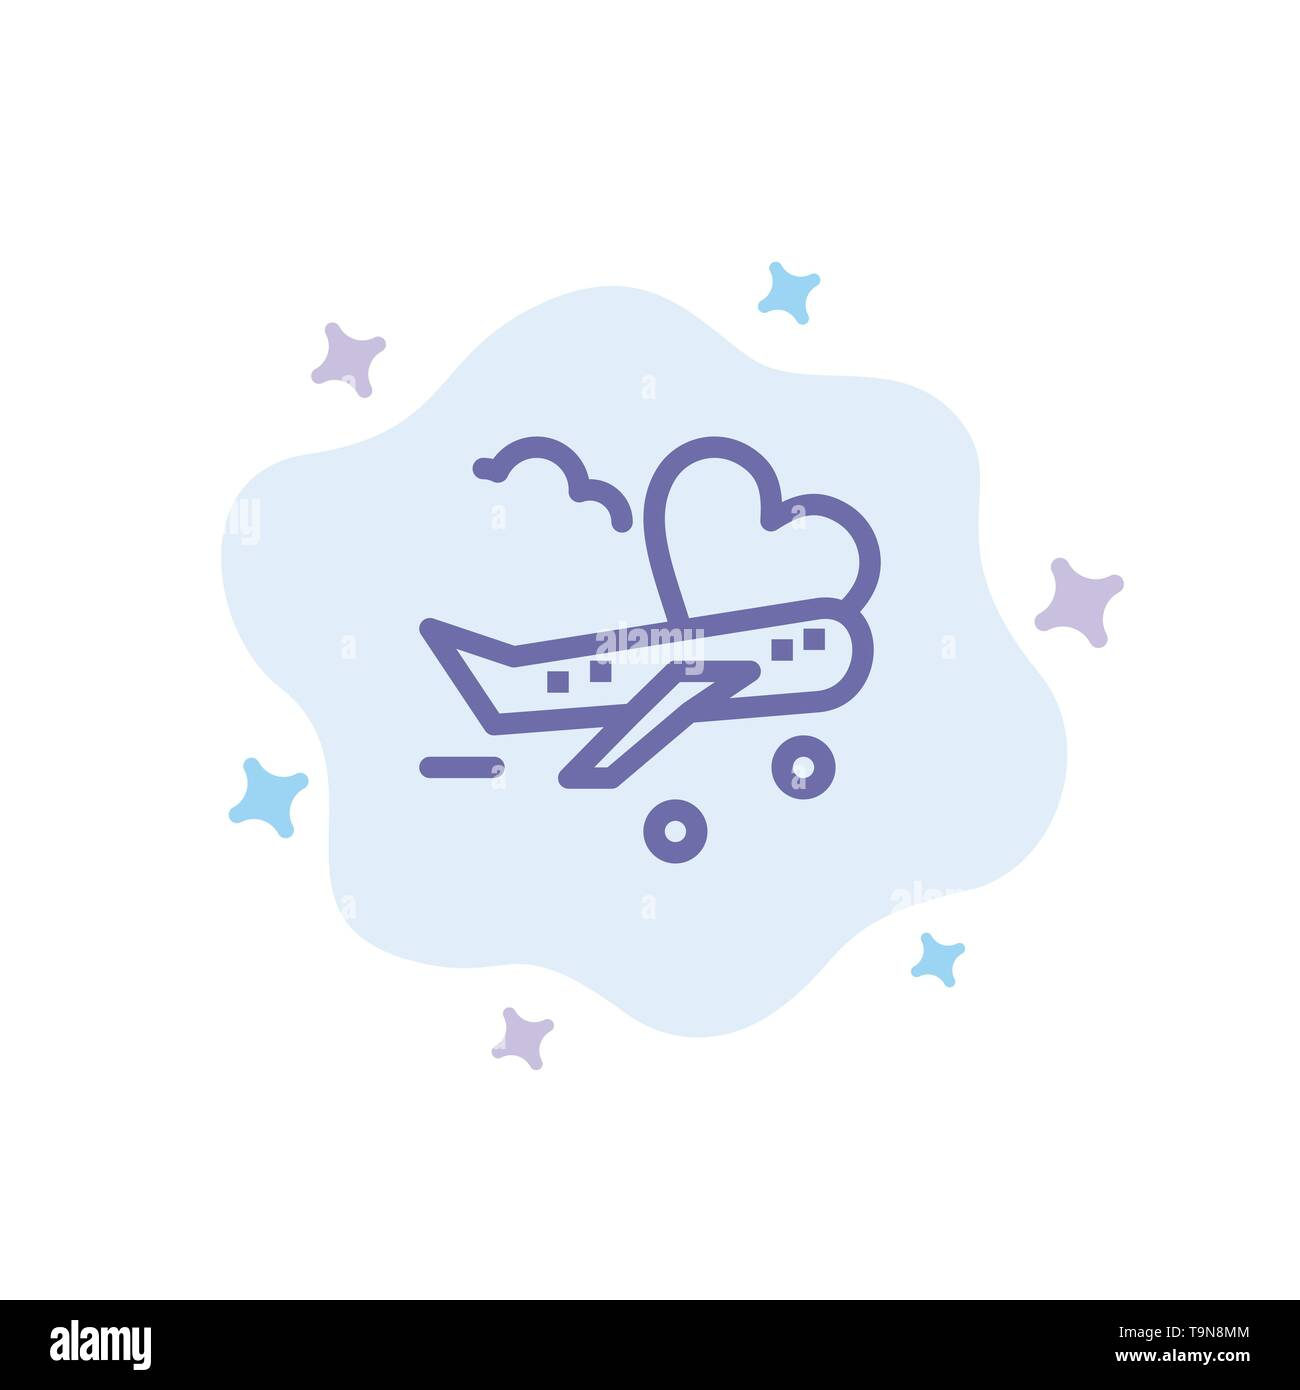 Fly, Airplane, Plane, Airport Blue Icon on Abstract Cloud Background - Stock Image